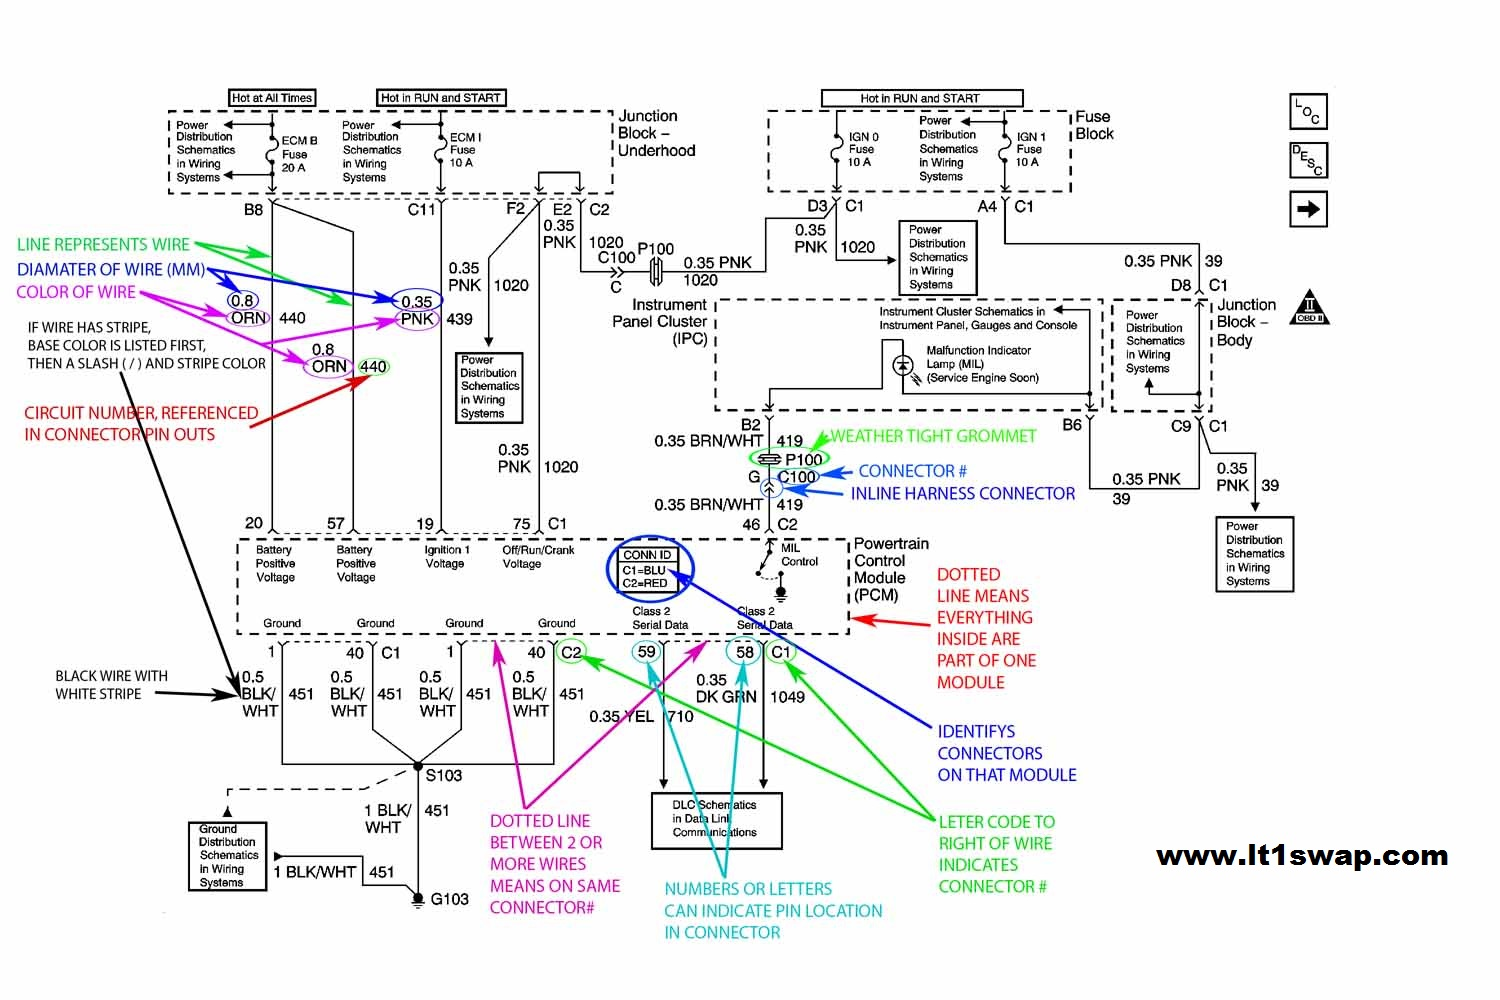 2001 S10 Blazer Starter Wiring Diagram Library 01 Radio Sample Schematic Similar To What You May See In The Following Pages This Help